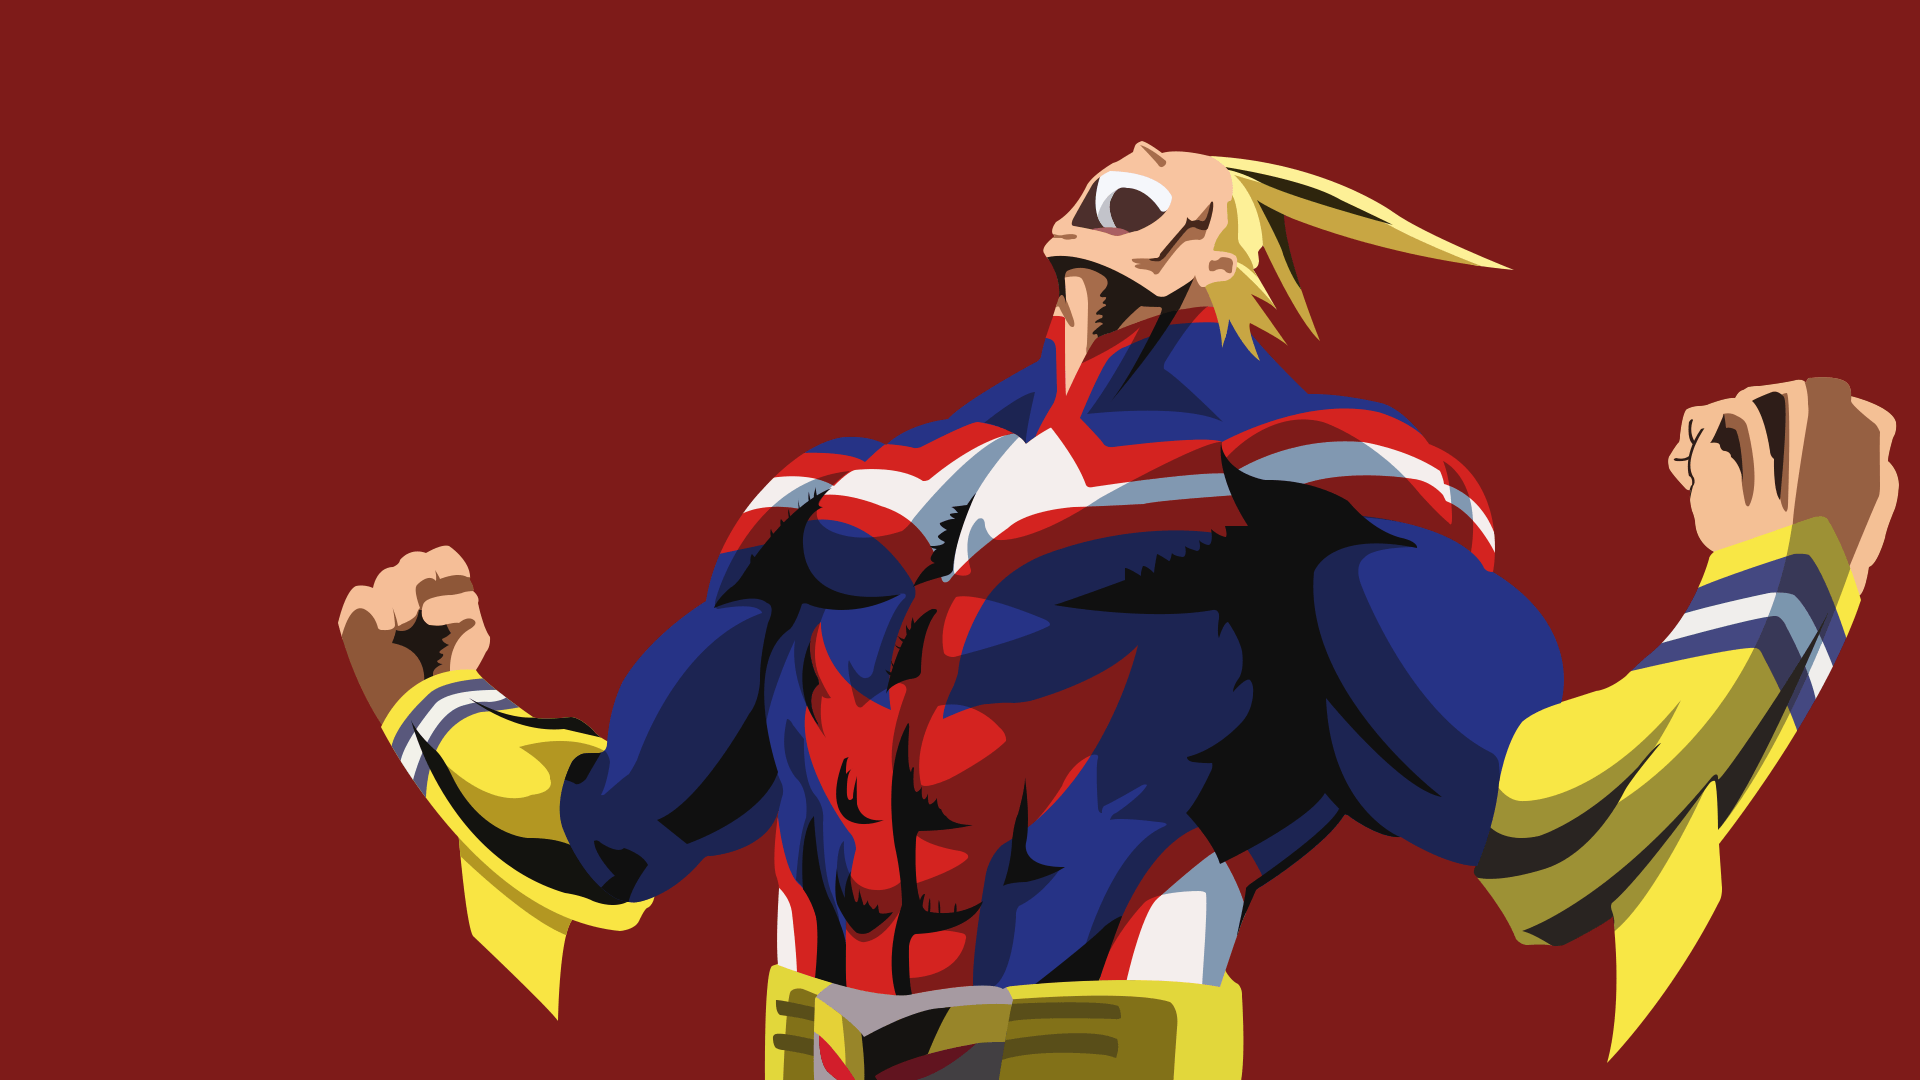 All Might from My Hero Academia Walpaper for Dekstop HD Wallpapers